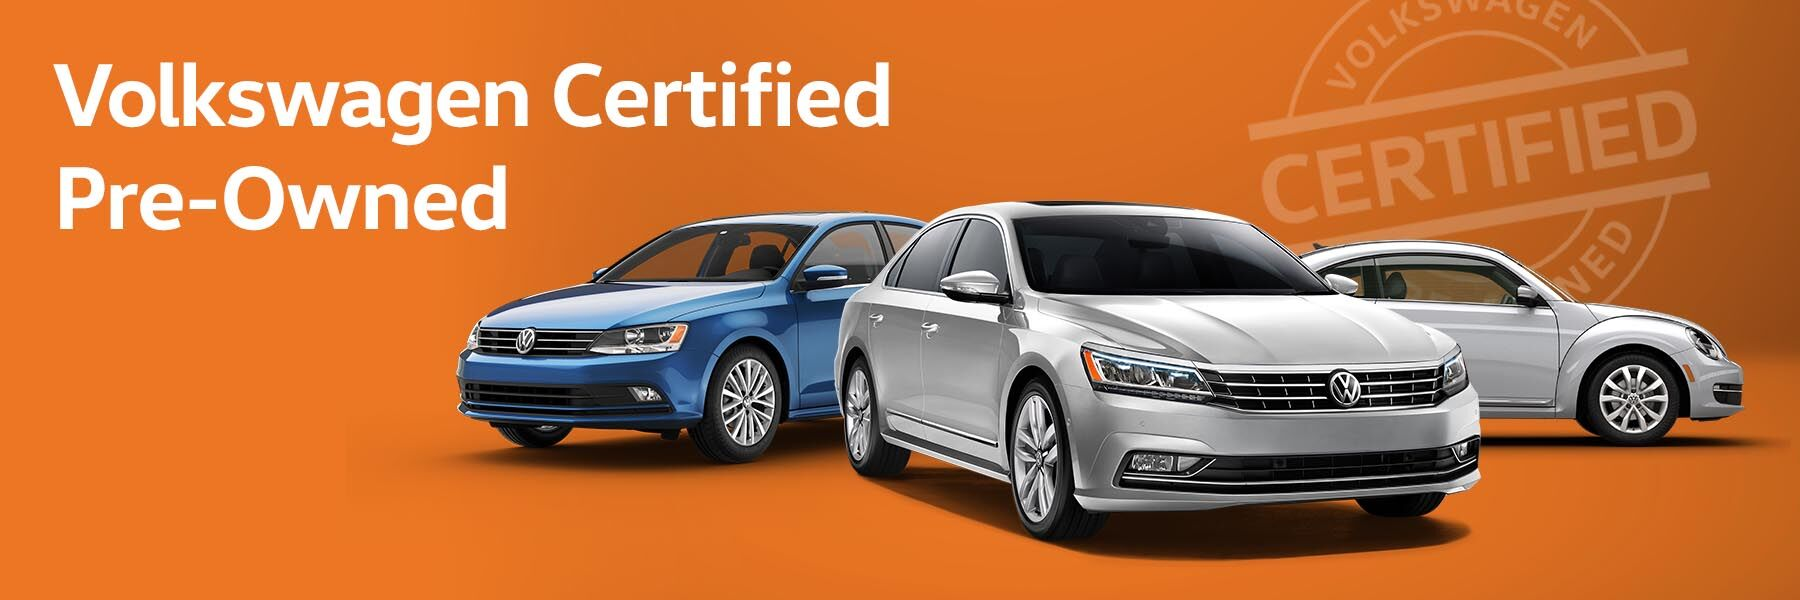 Volkswagen Certified Pre-Owned in Ventura, CA